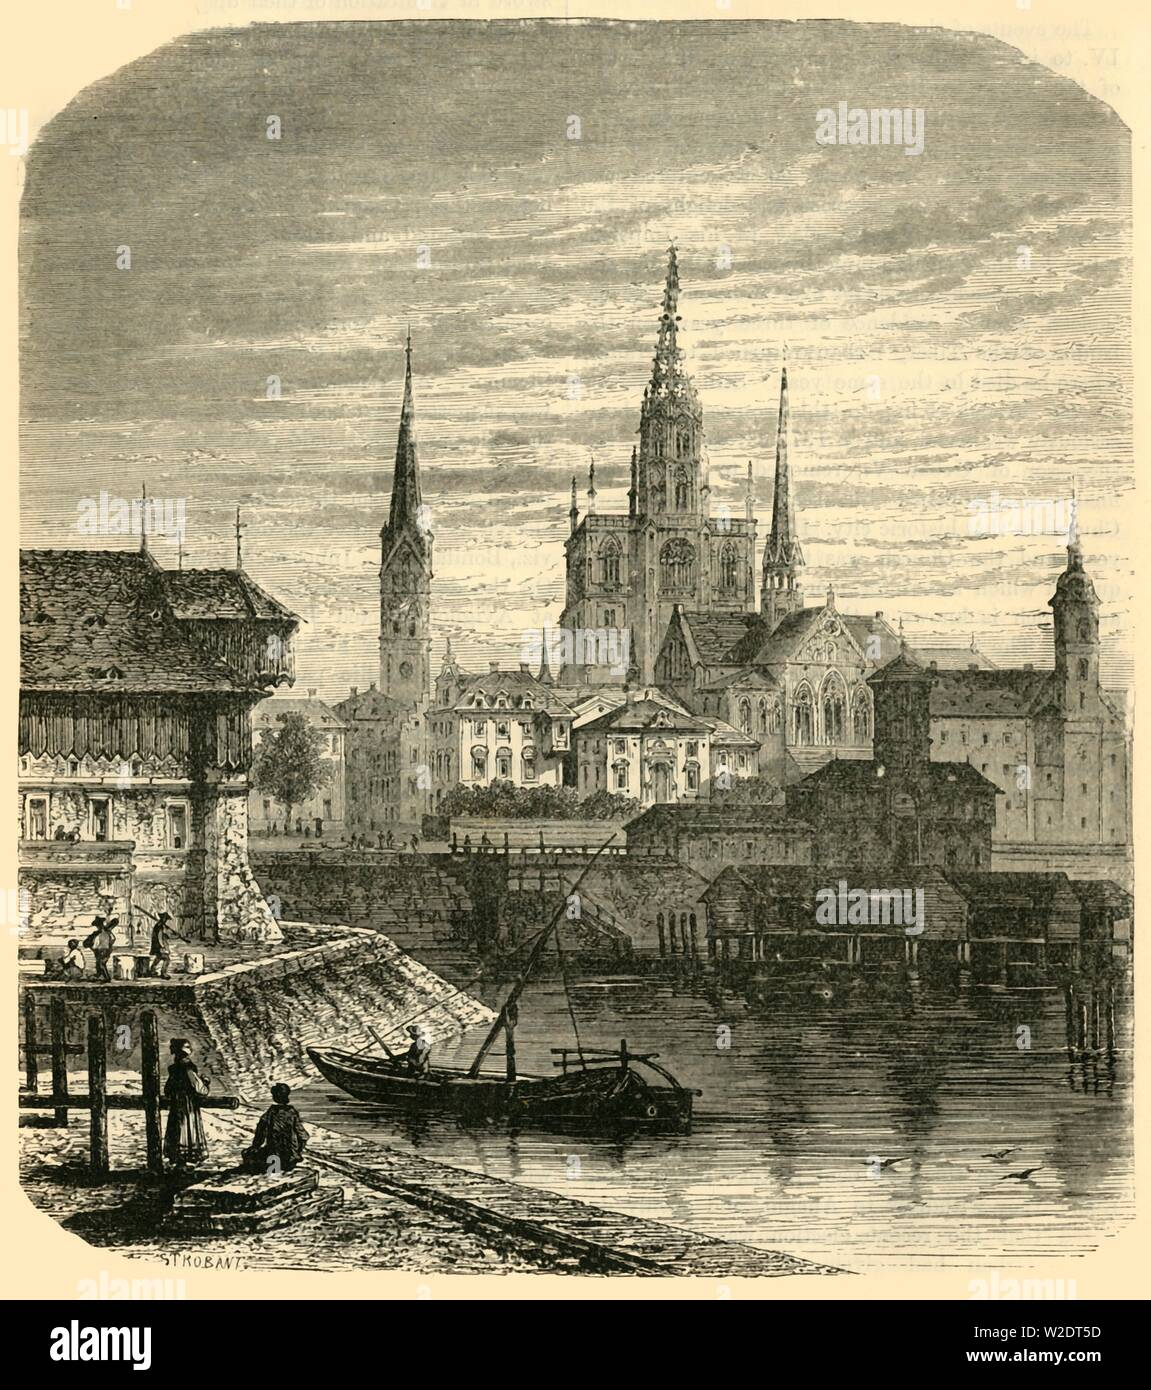 "'Constance', 1890. Konstanz Cathedral in Konstanz on the river Rhine flowing into Lake Constance, by the late Middle Ages,about a quarter of inhabitants were exempt from taxation on account of clerical rights. In 1192, Konstanz gained status of Imperial City subject only to the Holy Roman Emperor. From ""Cassell's Illustrated Universal History, Vol. III - The Middle Ages"", by Edmund Ollier. [Cassell and Company, Limited, London, Paris and Melbourne, 1890. ] - Stock Image"